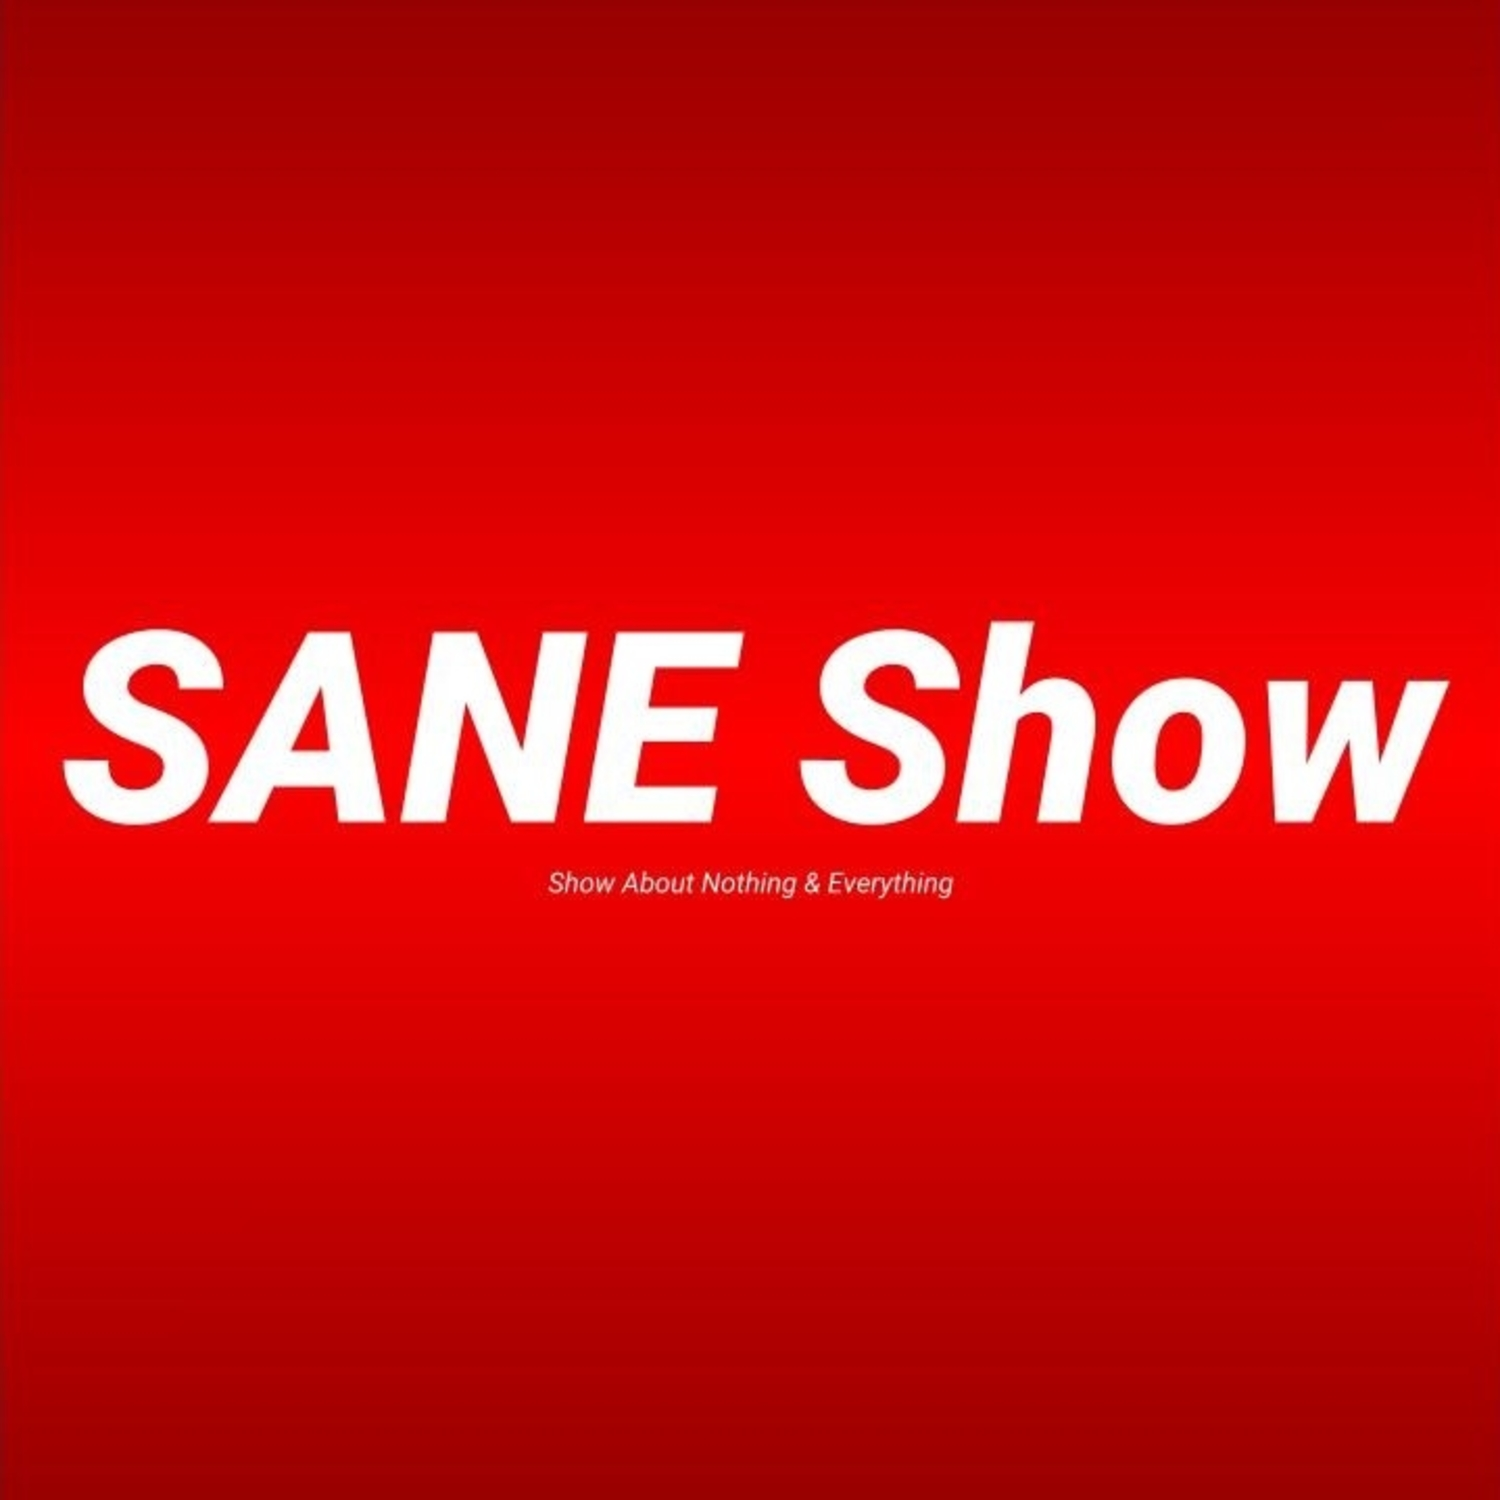 The SANE Show